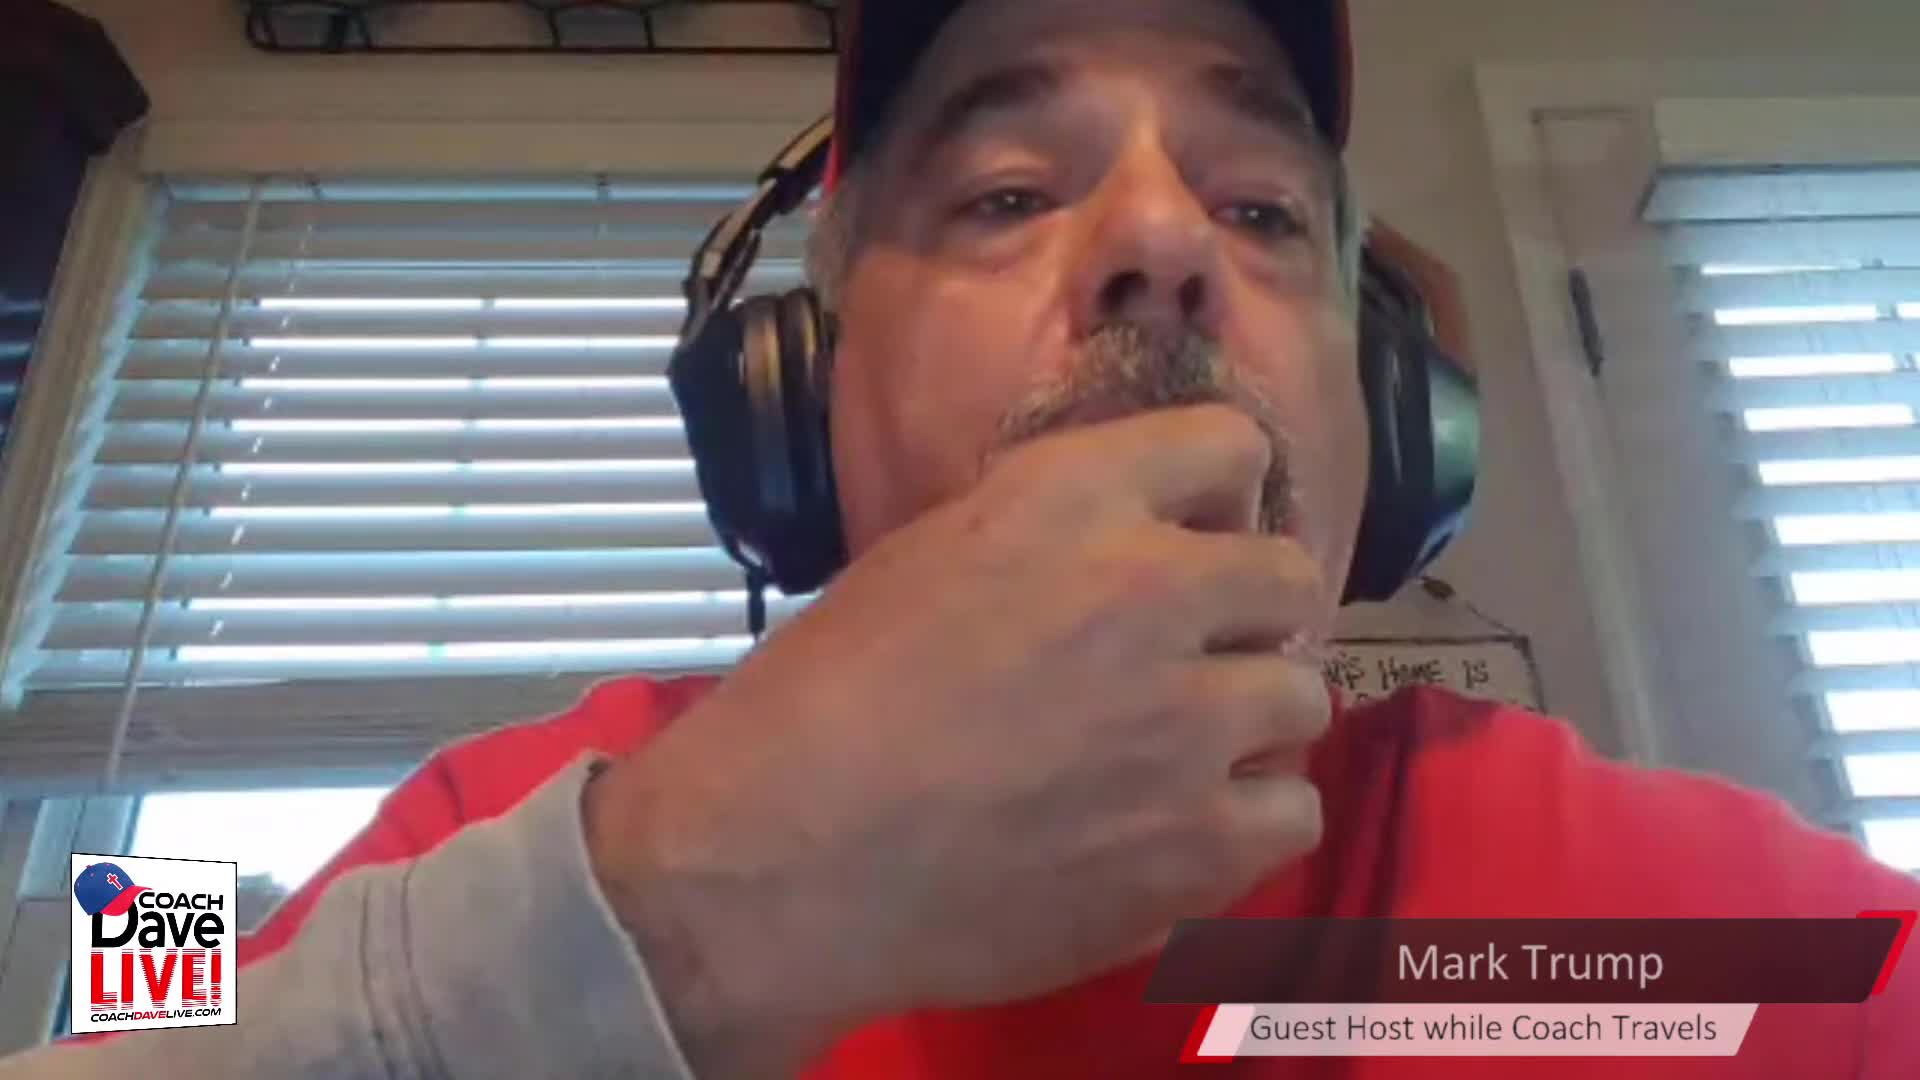 Coach Dave LIVE   4-9-2021   GUEST HOST MARK TRUMP: JUDGMENT OF THE WORLD - AUDIO ONLY